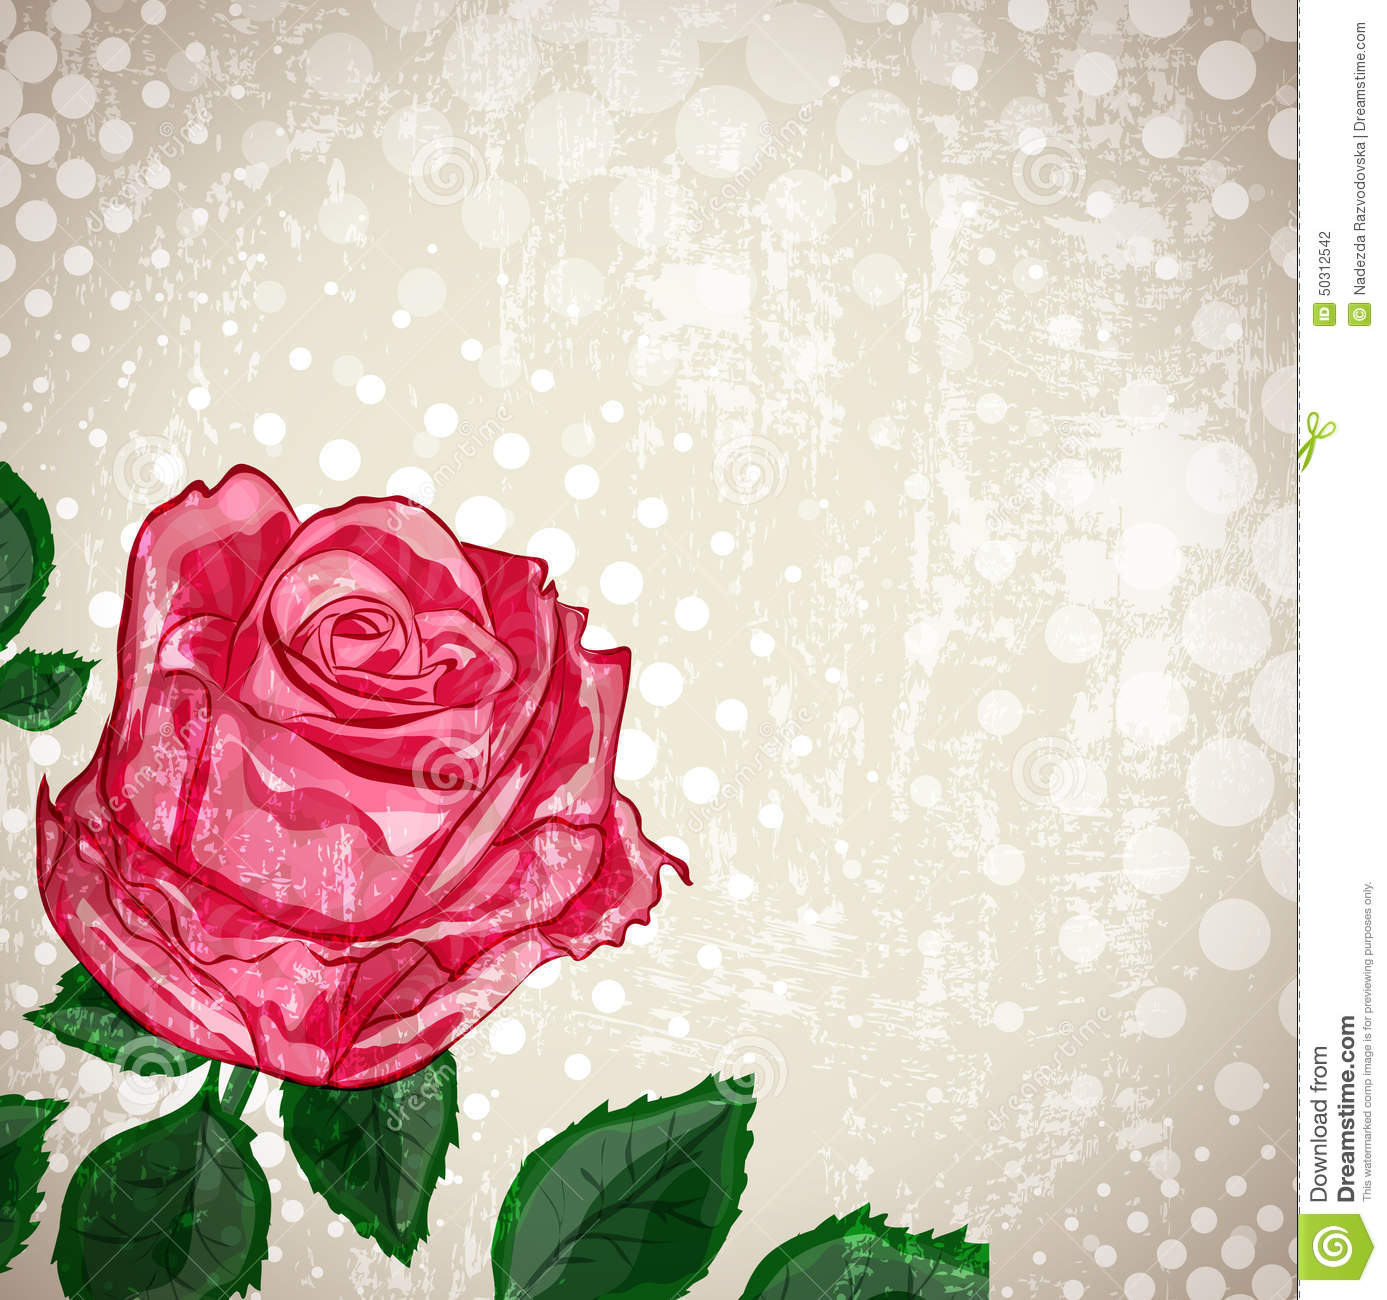 Abstract vintage background stock images image 31930534 - Vintage Abstract Rose Flower Background Stock Photography